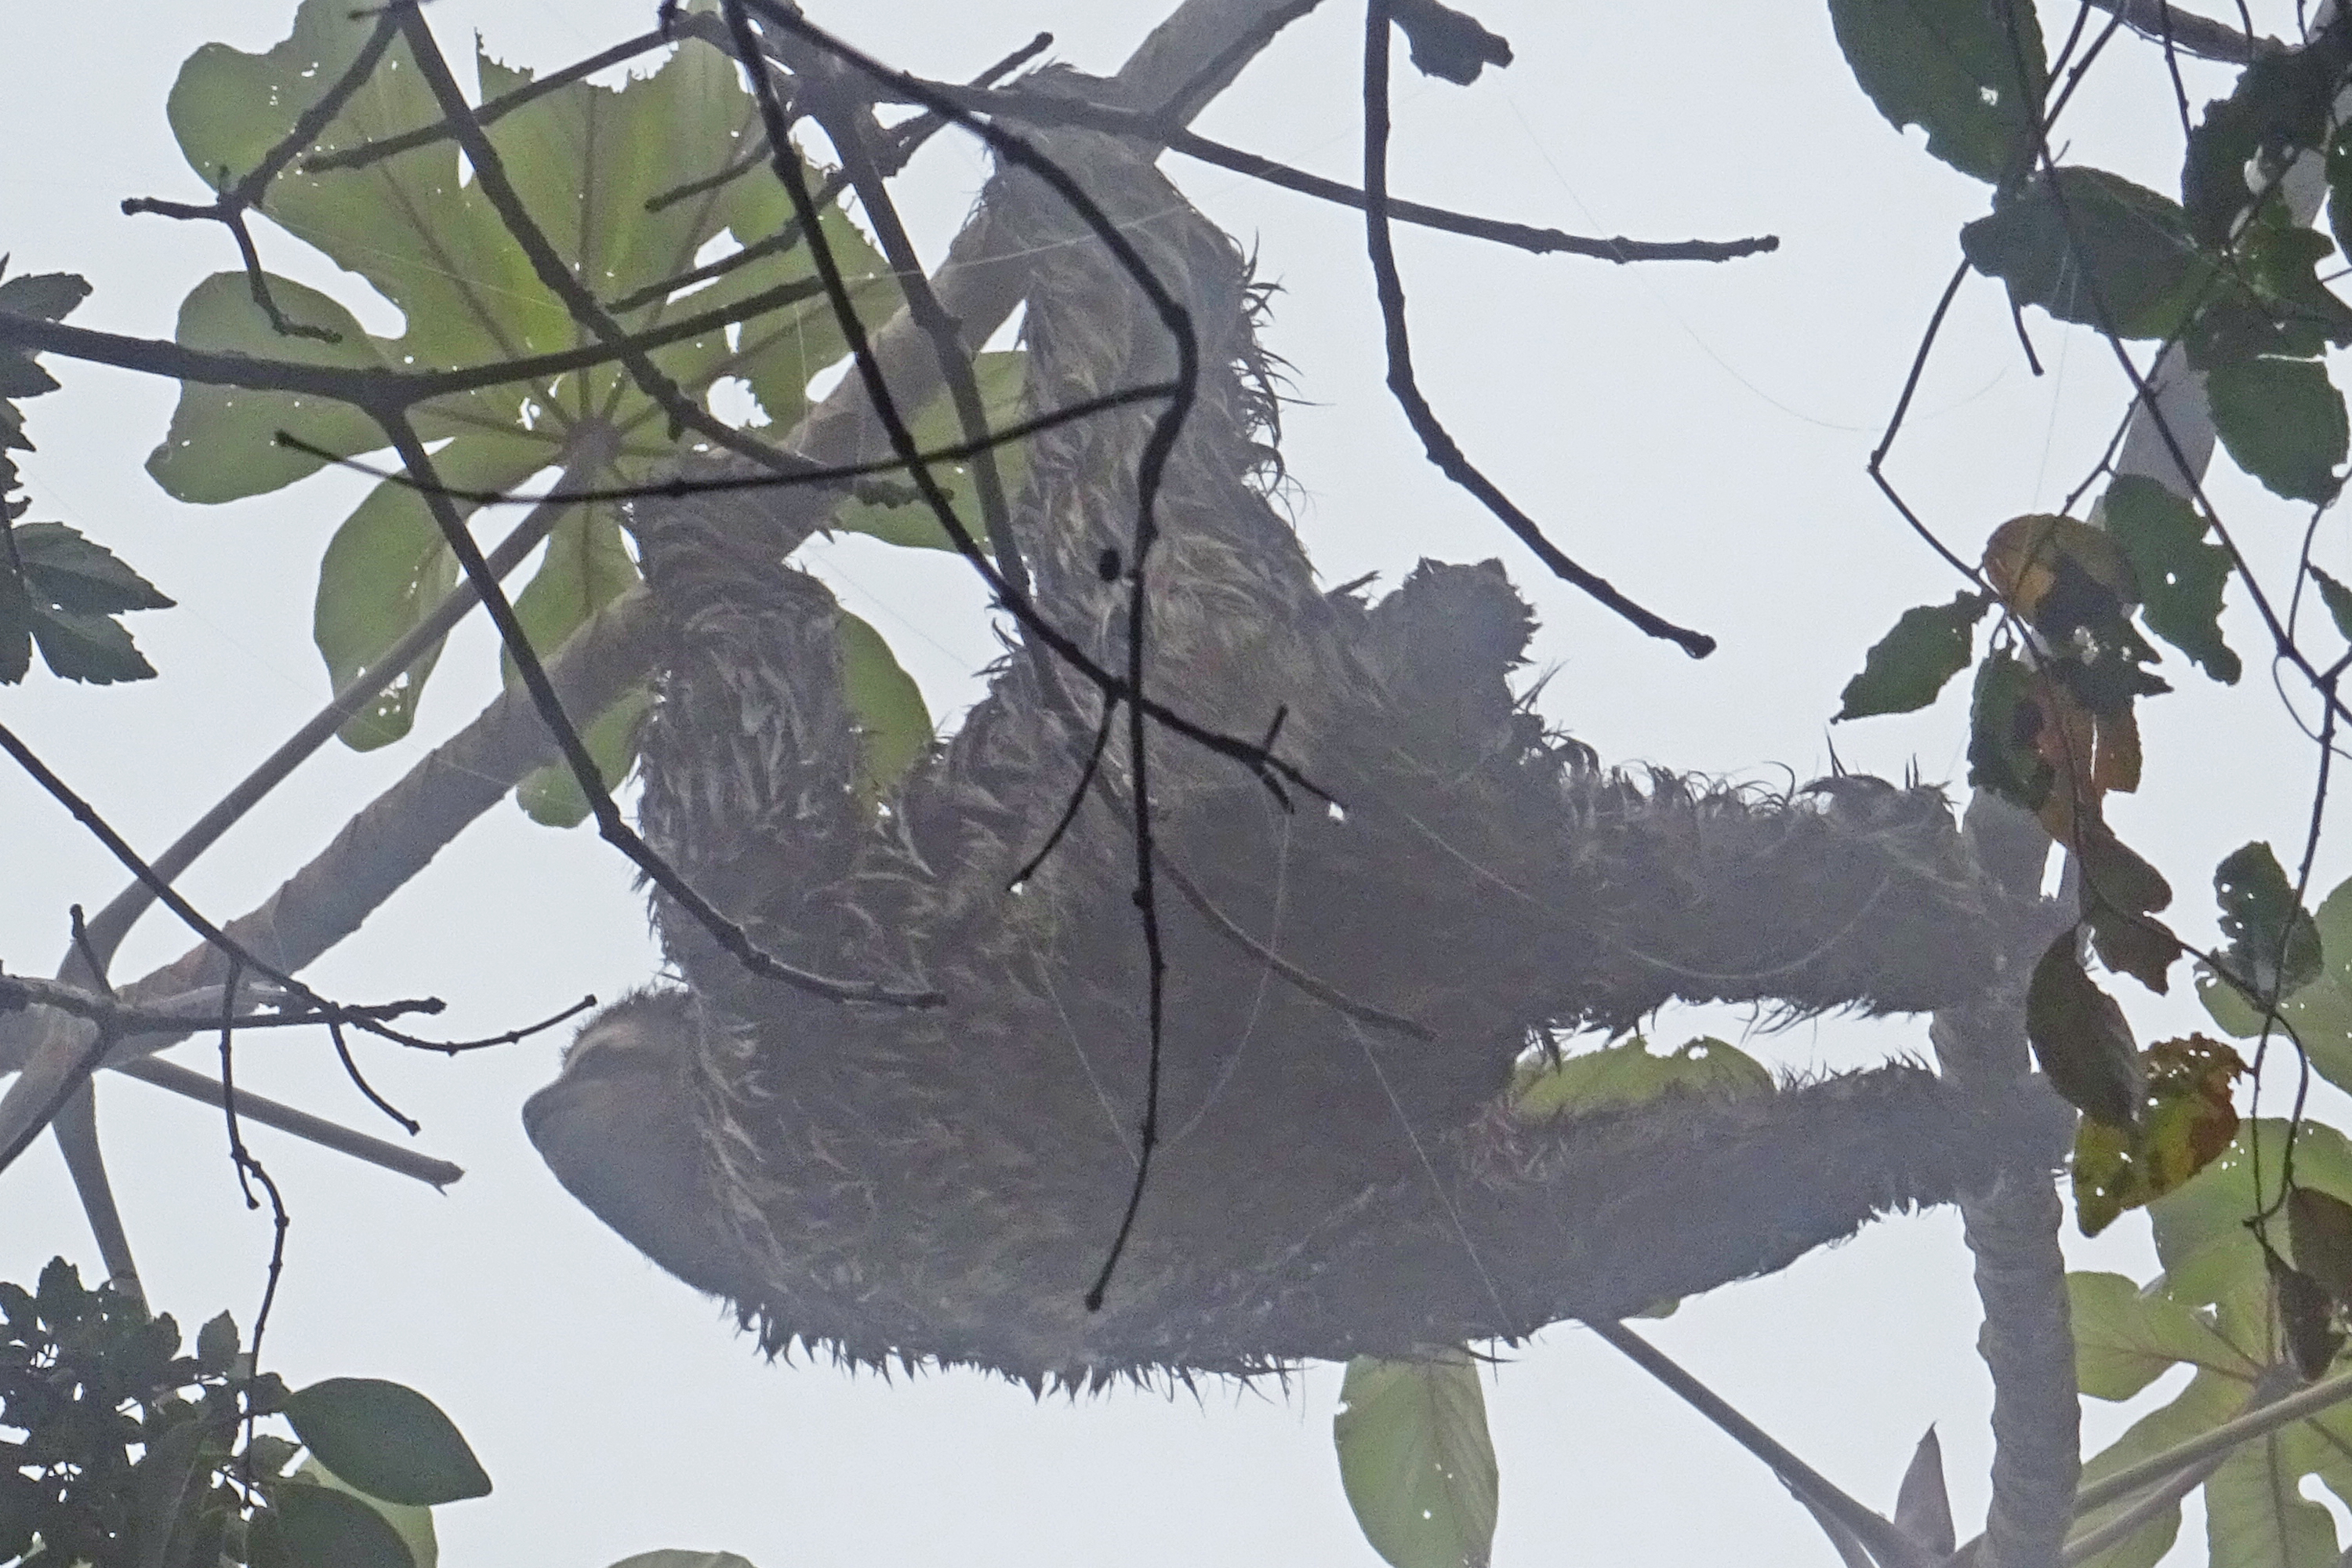 Tijuca Rainforest Sloth